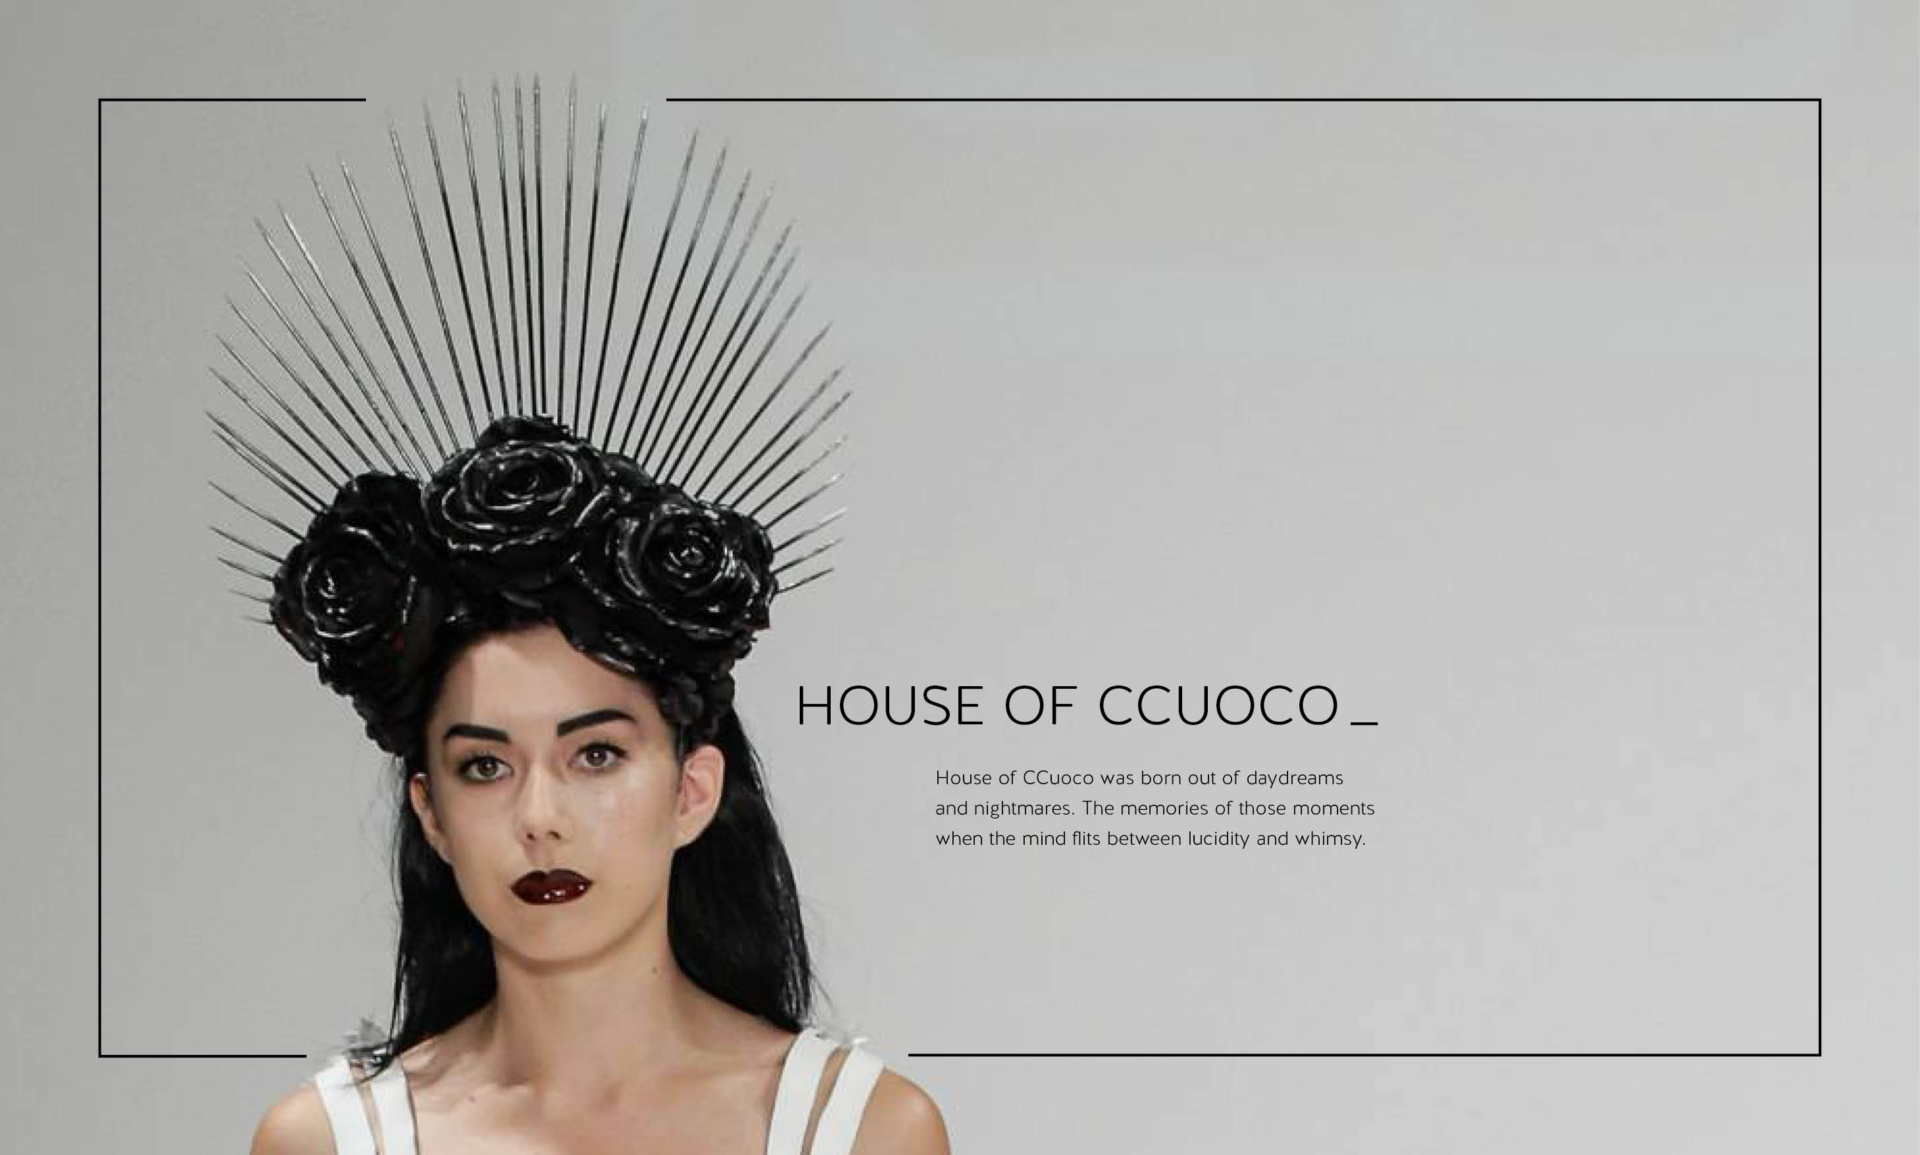 Shot of a woman in black headdress, taken for client, House of CCuoco. Black box around the edge, with logo featured. Graphic design and marketing strategy by Barefaced Studios, design agency based in Islington, North London.